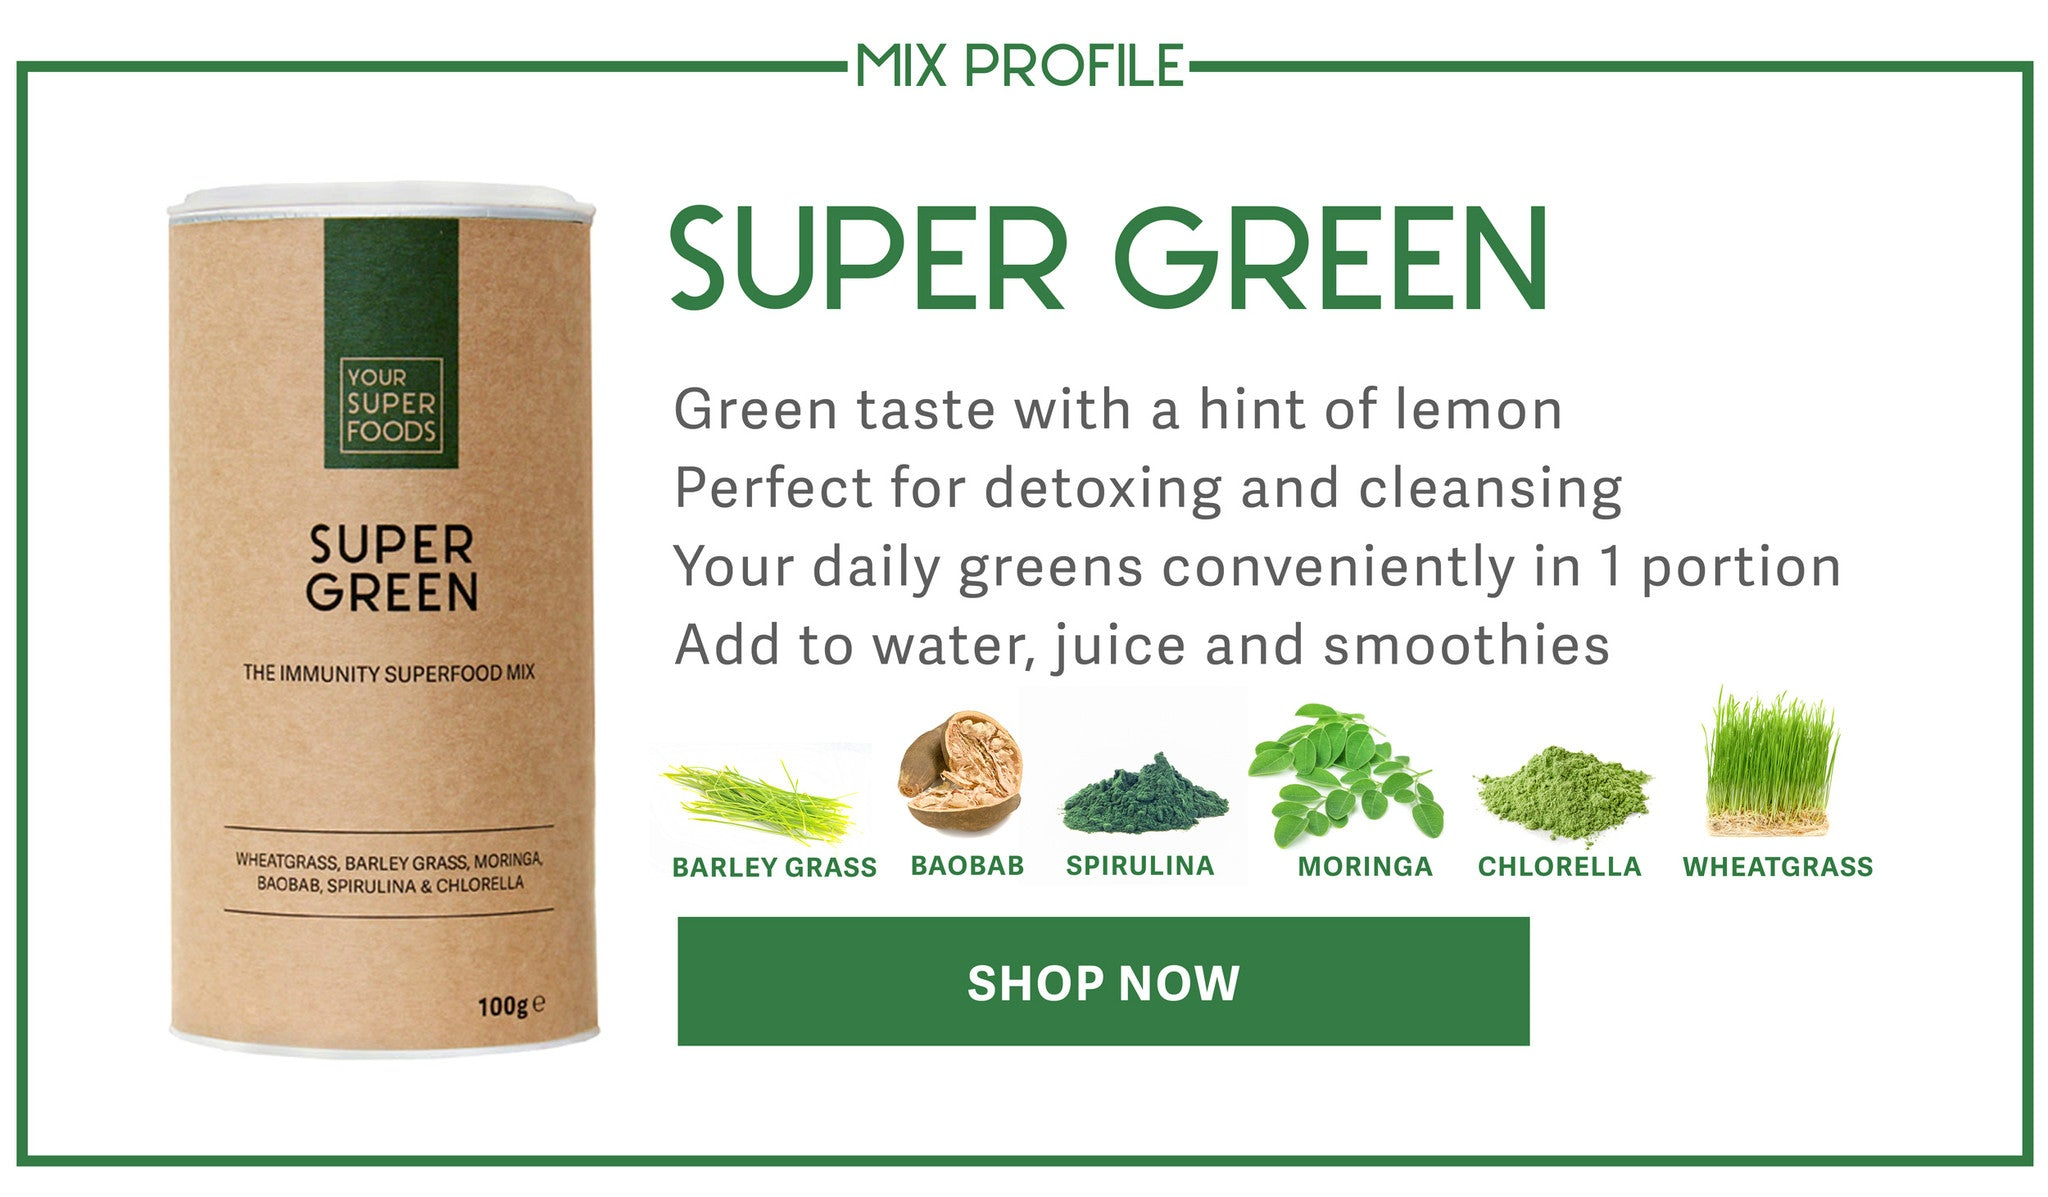 Super Green Profile Mix